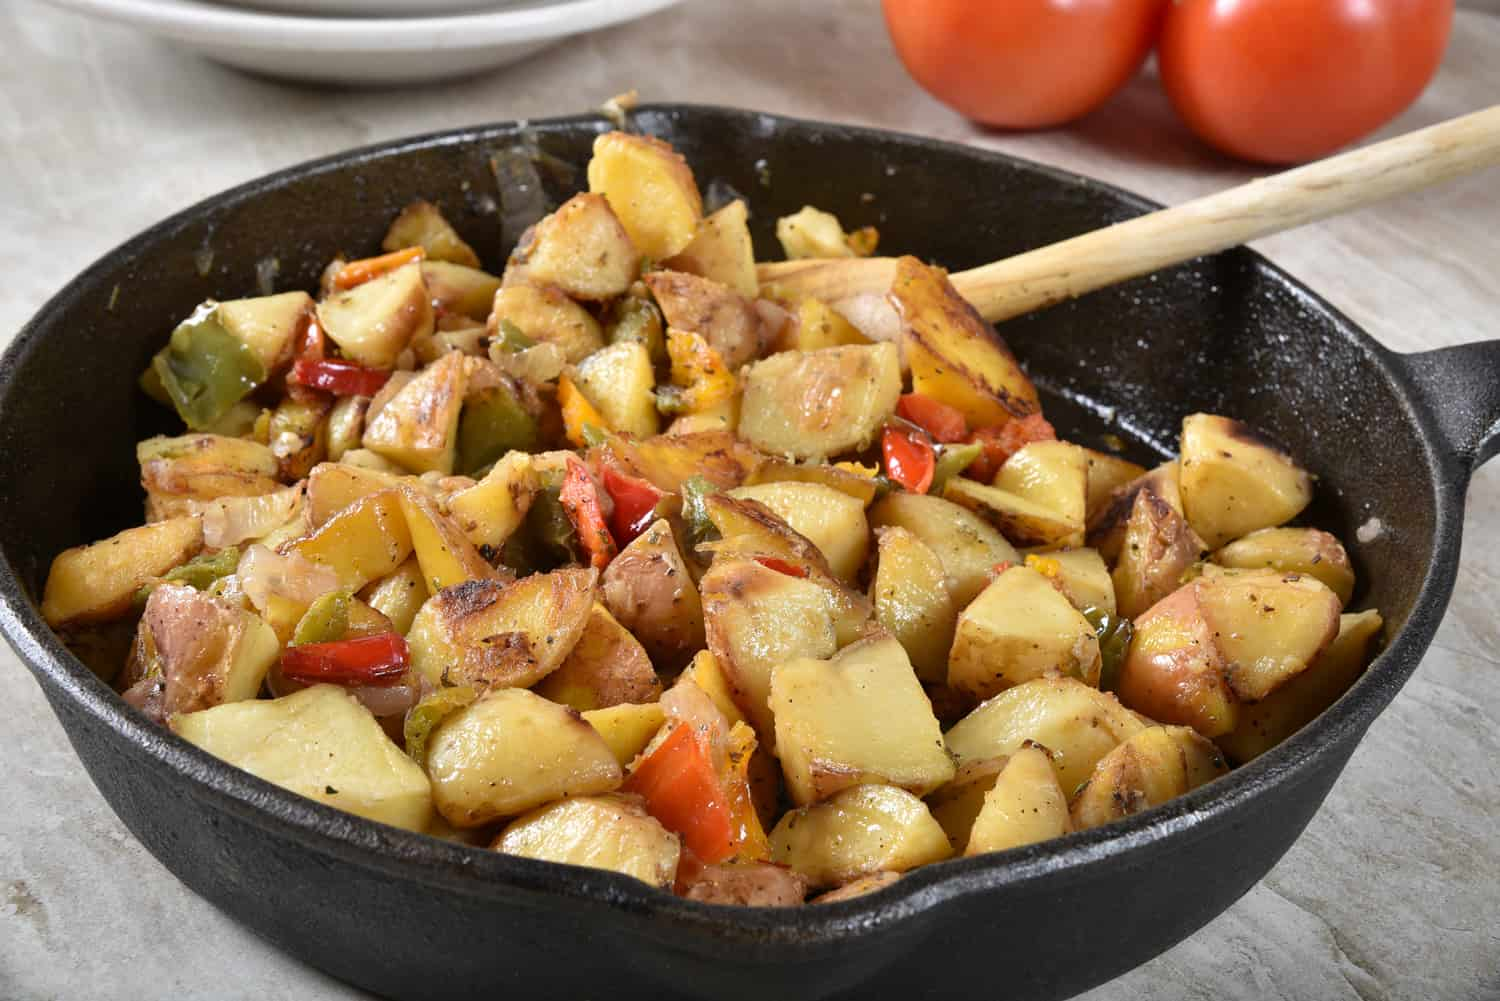 Gourmet roasted potato wedges in a cast iron skillet with bell peppers and onion